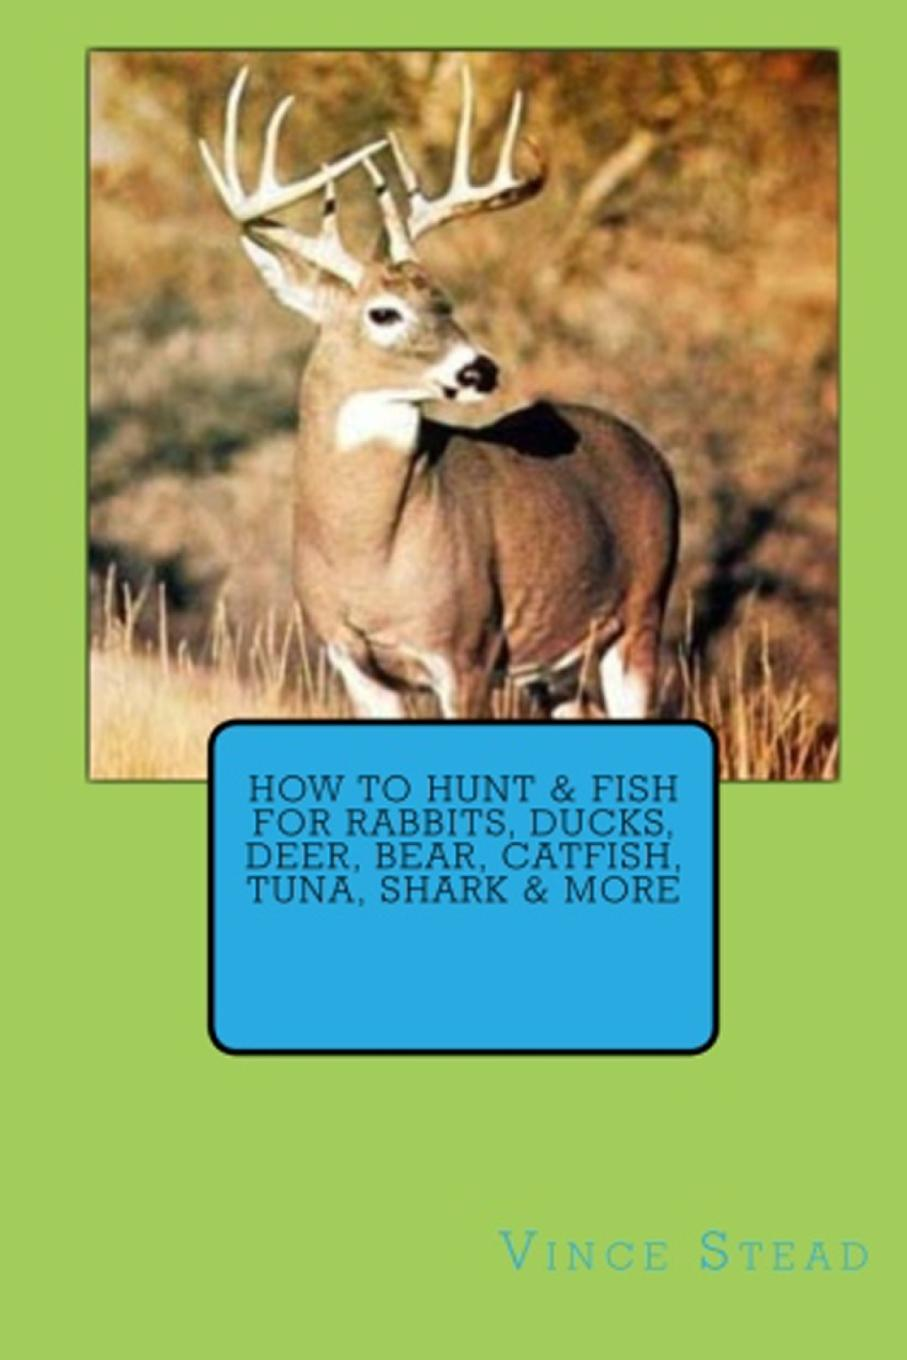 Vince Stead How to Hunt . Fish for Rabbits, Ducks, Deer, Bear, Catfish, Tuna, Shark . More trivial pursuit pop culture 2 to go